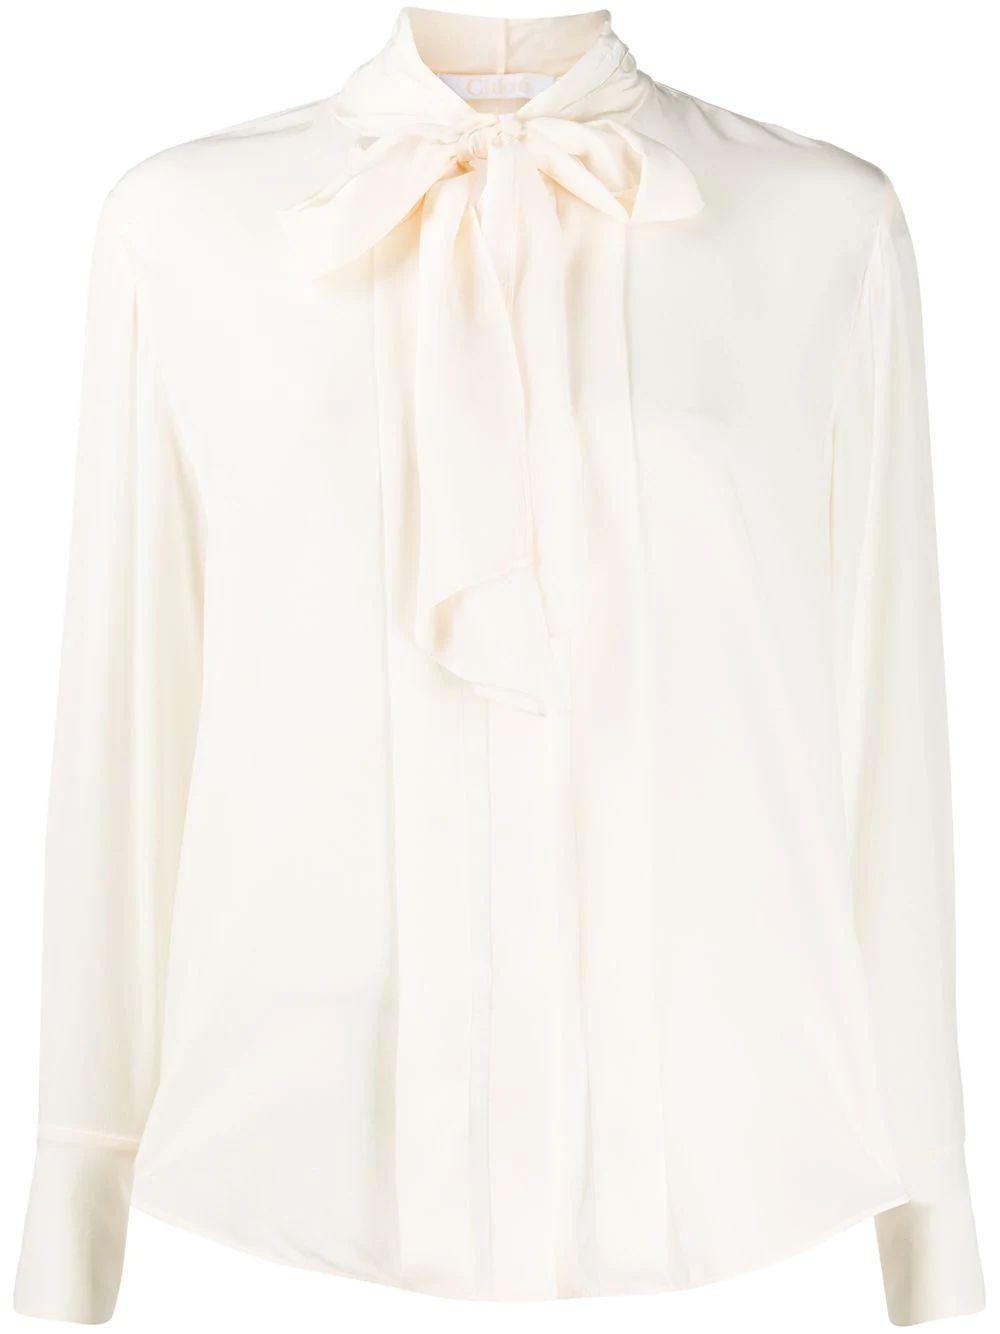 Long Sleeve Crepe De Chine Blouse With Neck Tie